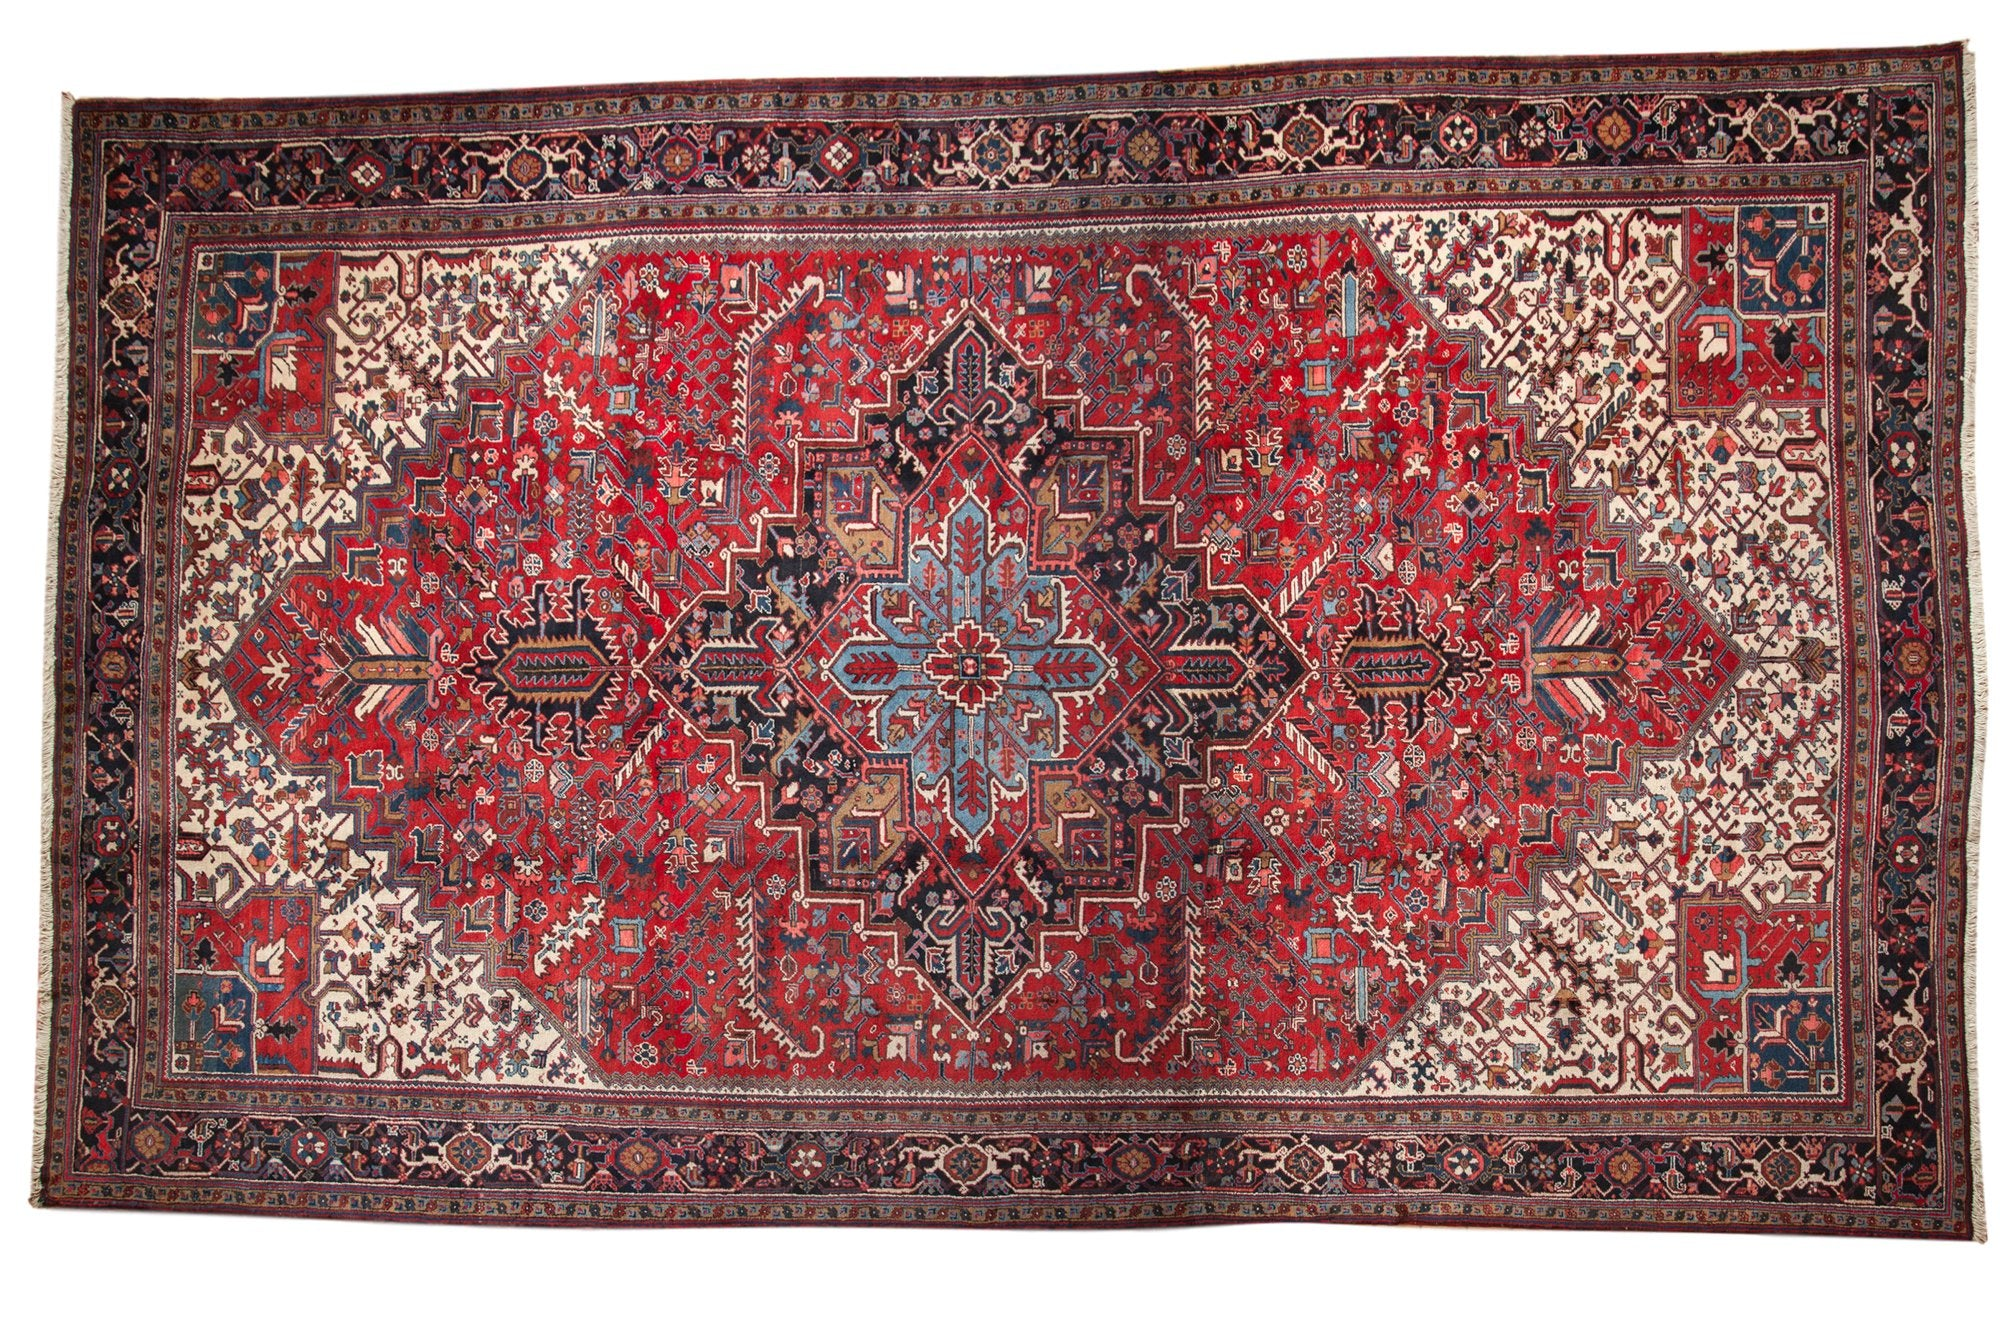 12x19 5 Vintage Mehrivan Carpet Onh Item Mc001199